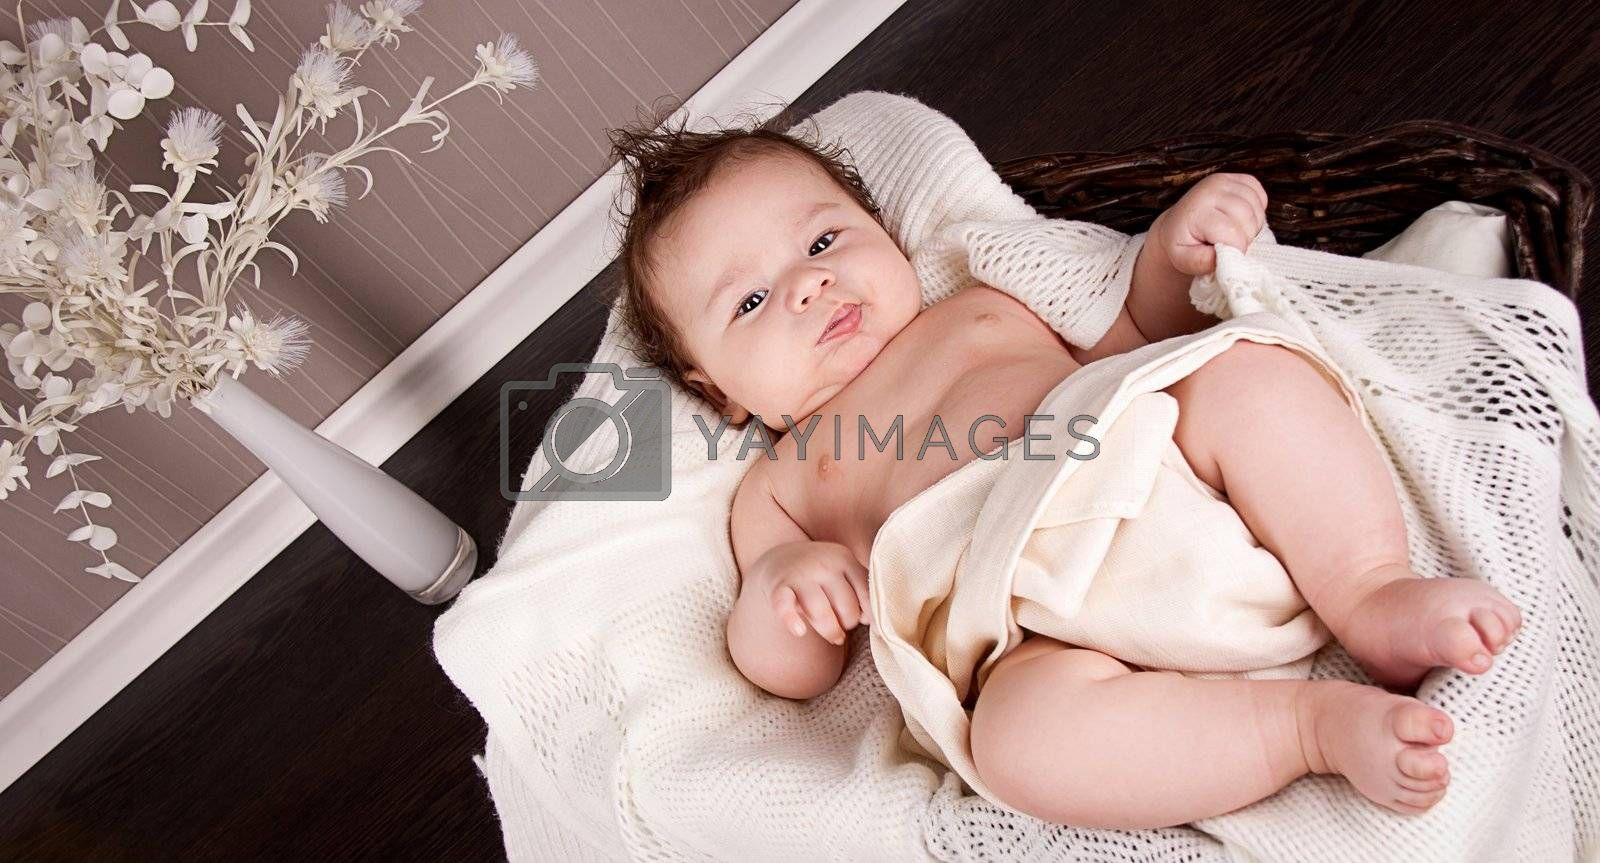 sweet little baby infant toddler on white  blanket in basket at home